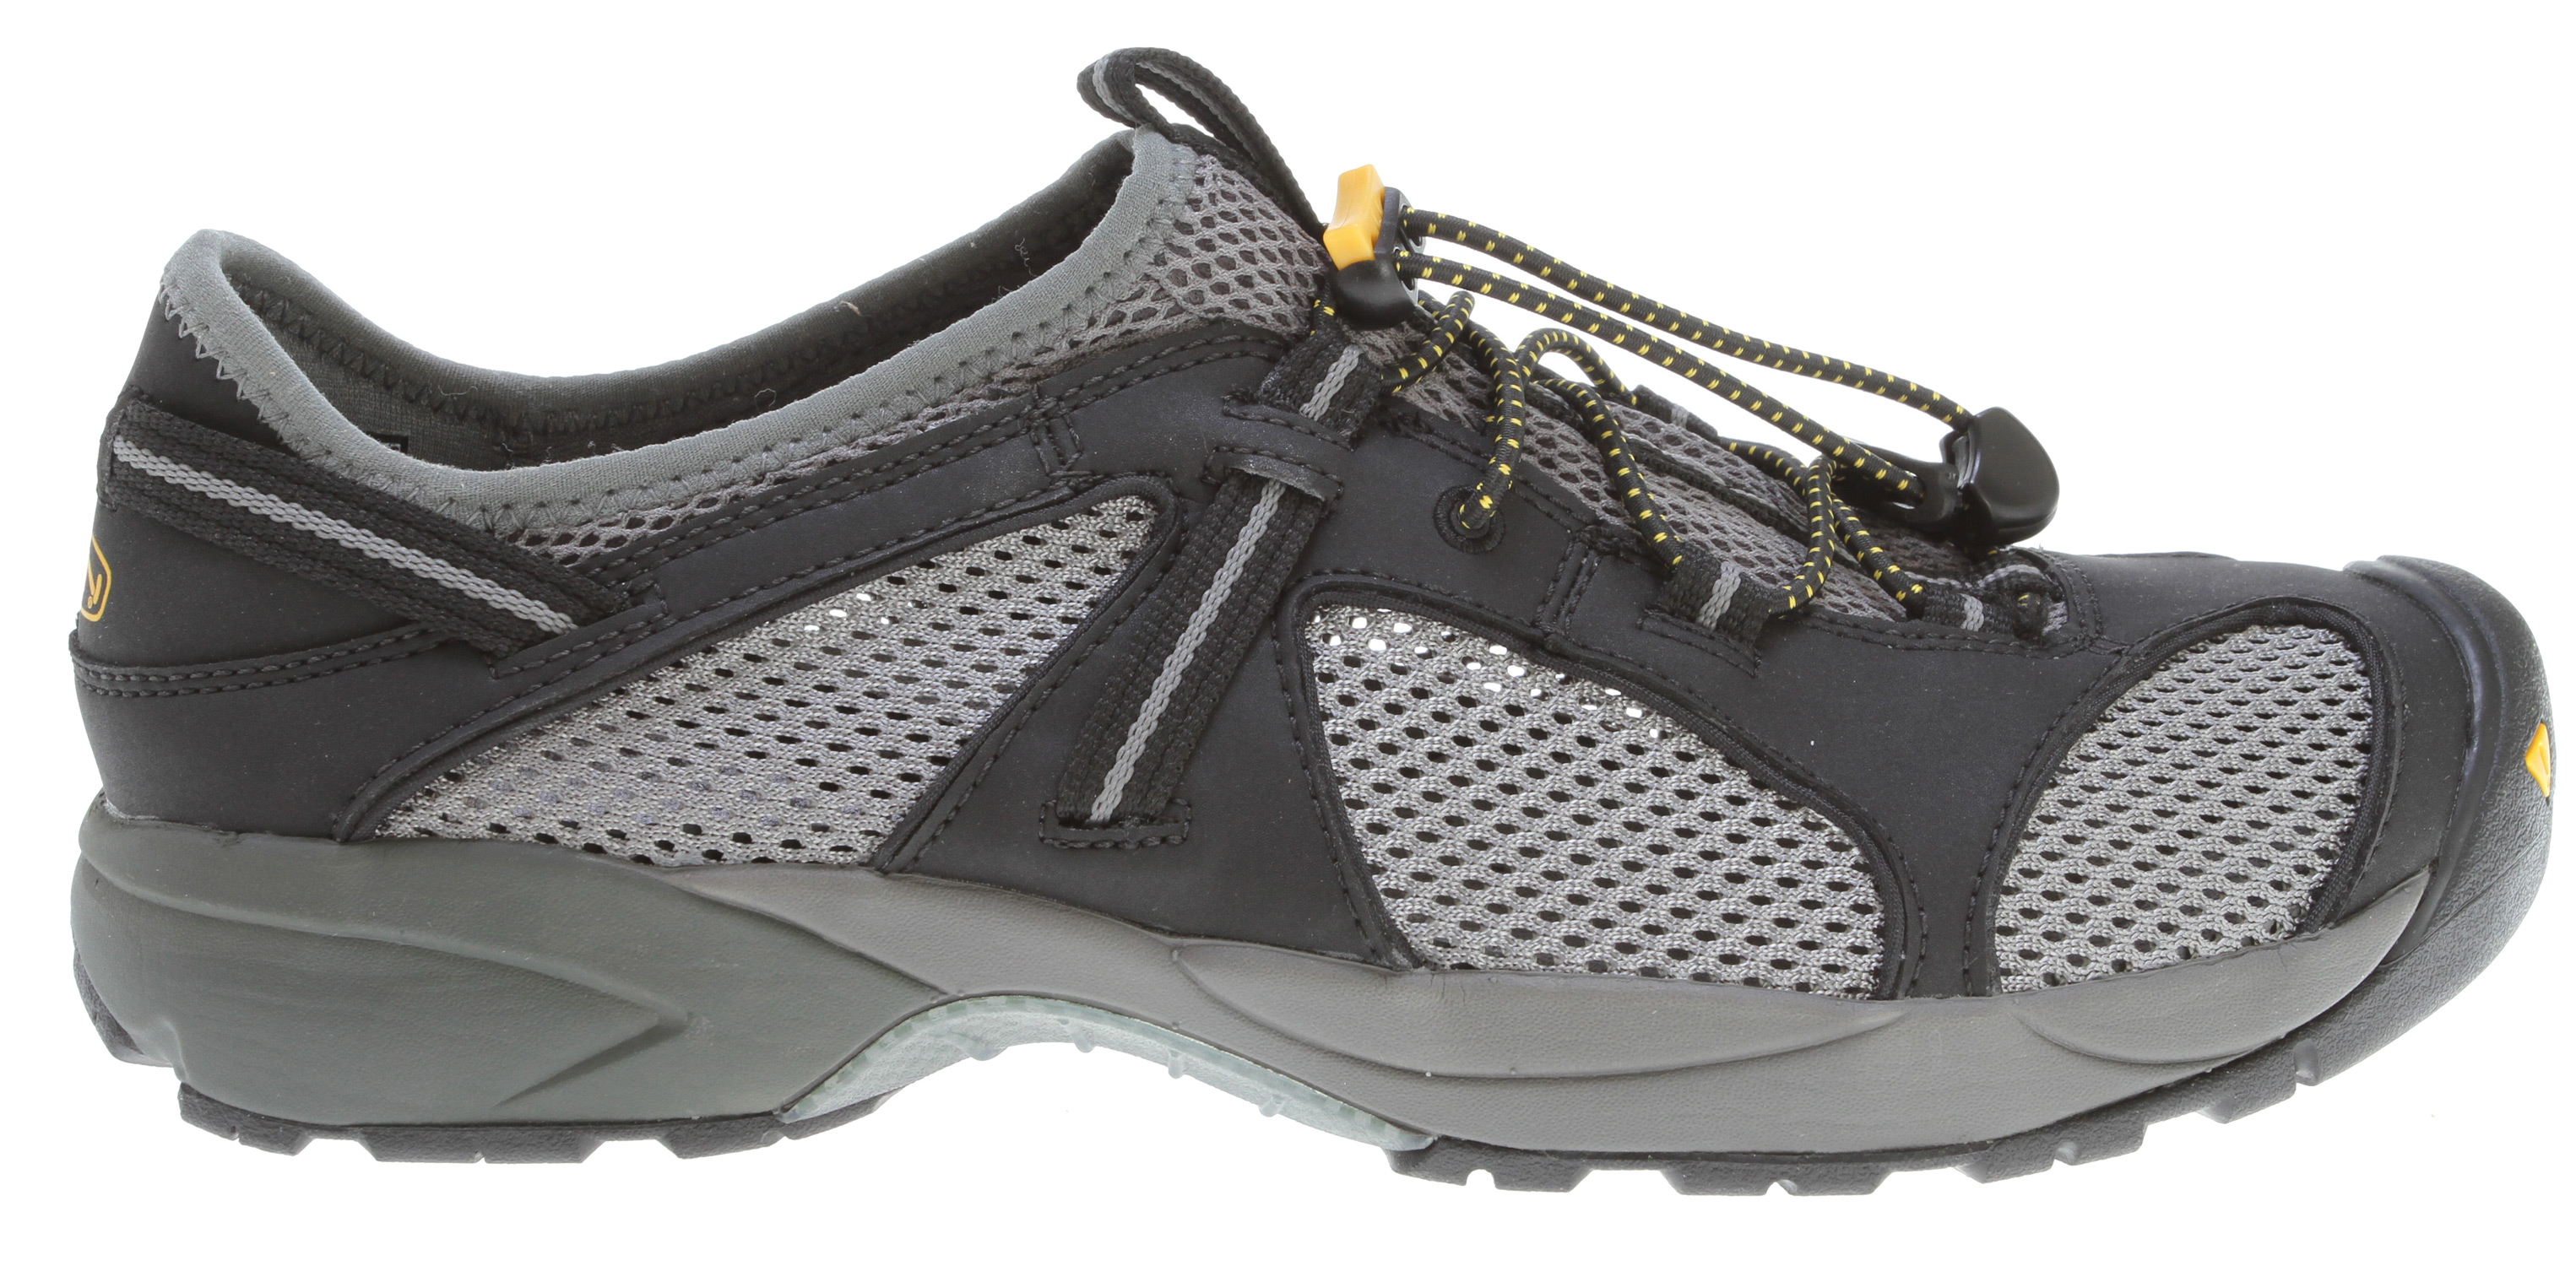 Camp and Hike A full-coverage version of our lightweight Turia Sandal, this go-anywhere adventure shoe features superb drainage and breathability. A minimal open-mesh synthetic upper allows for maximum venting in hot weather, and our secure fit lace capture system and KEEN's active heel lock keep your feet securely in place. Razor siping on the sole provides superb traction on wet, slick surfaces.Key Features of the Keen Turia Hiking Shoes: Fit Tip: We find this style runs about a 1/2 size small. Upper: Lightweight synthetic and open mesh upper Rubber: Water traction rubber compound with razor siping Activities: Hiking, Beach, Sailing Type: Shoes Weather: Warm - sandals Dual density compression molded EVA midsole with ESS stability shank KEEN active heel lock Lightweight synthetic and open mesh upper Removable metatomical EVA molded footbed with AEGIS microbe shield S3 Heel support structure Secure fit lace capture system Water traction rubber compound with razor siping S3: Shock, suspension, stability - otherwise known as S3 - is engineered to support the foot on impact, dissipate shock and reduce your odds of twisting an ankle. AEGIS MICROBE SHIELD: Aegis Microbe Shield controls the bacteria and fungi that cause odors, stains and product deterioration. Aegis technology is free of environmentally harmful substances. - $69.95